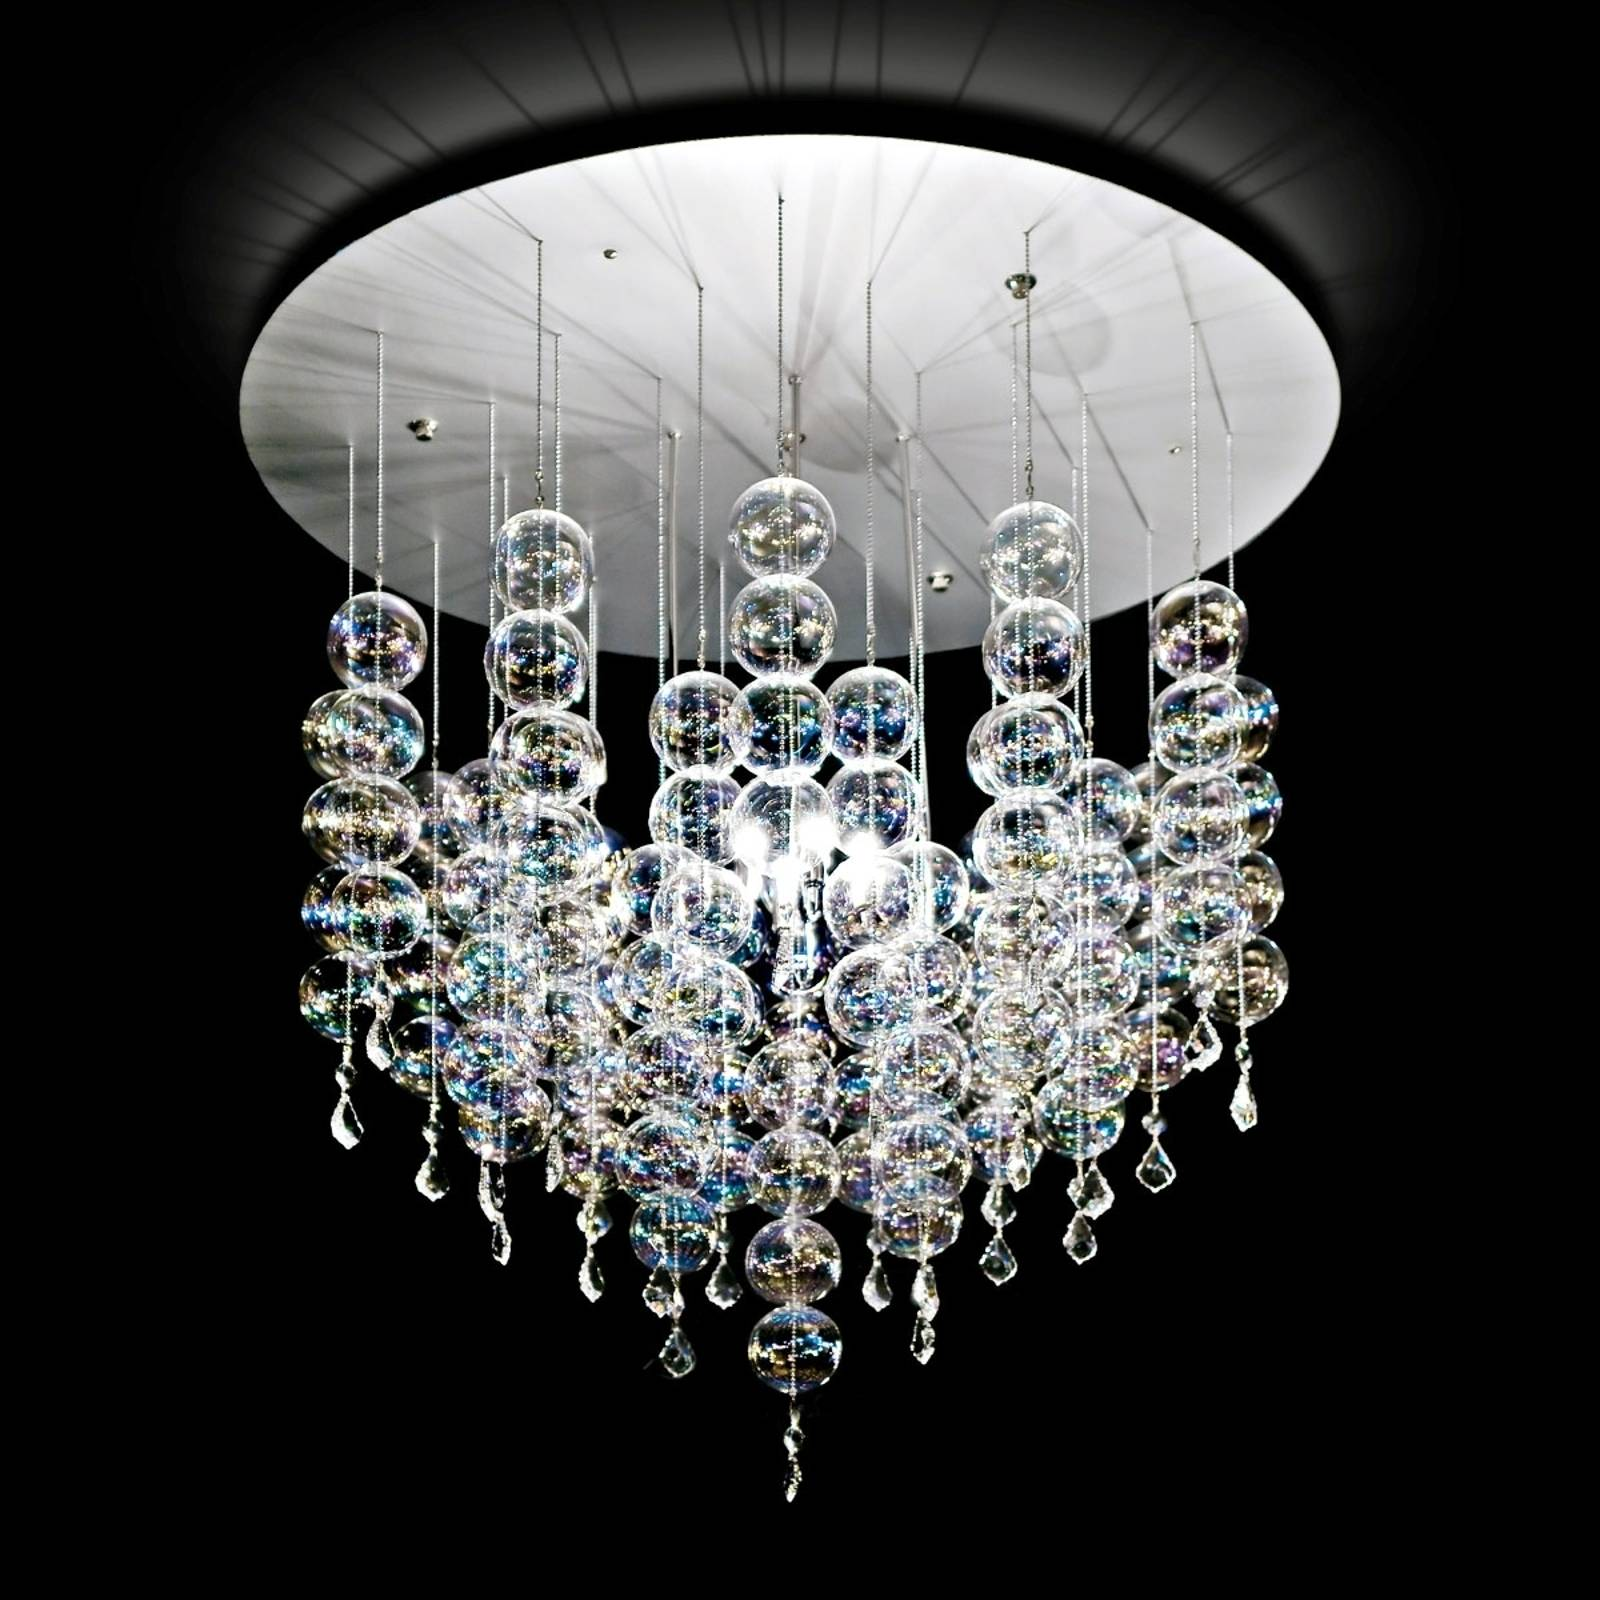 Soap hanging light with elegant glass spheres from NOVARESI